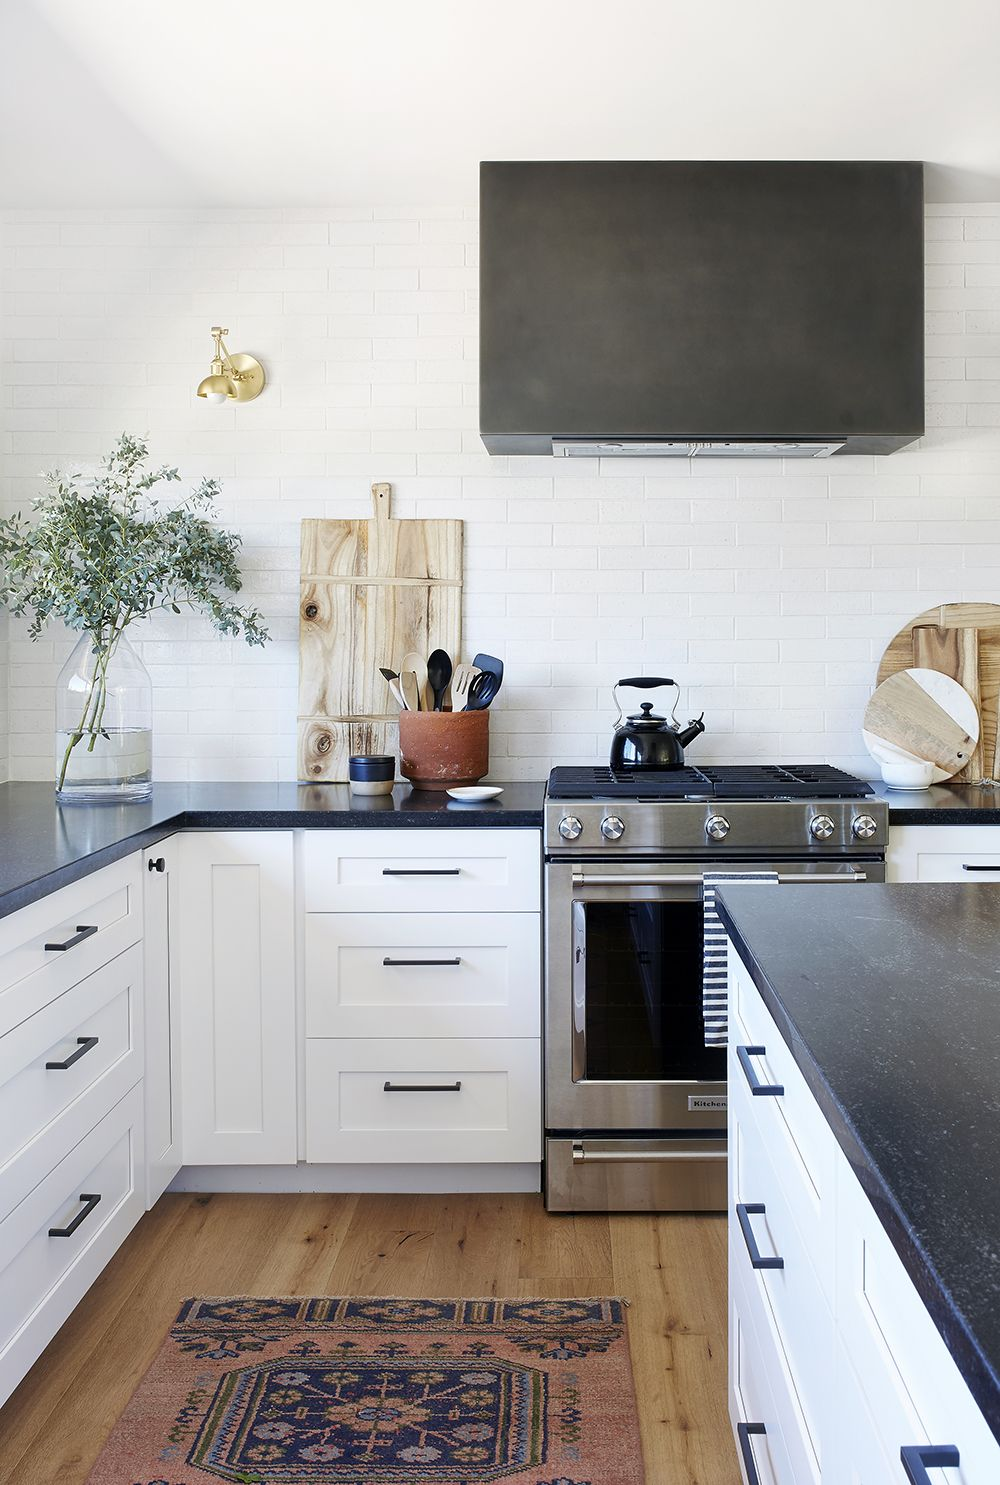 How an Interior Designer Made Her First Home Her Own | Rue ... Tourquay Quartz With Blue Cabinets Kitchen Ideas on kitchen ideas with turquoise, kitchen ideas gray cabinets, kitchen ideas clear cabinets, kitchen ideas brown cabinets, kitchen ideas green cabinets, kitchen ideas black cabinets, kitchen ideas red cabinets,